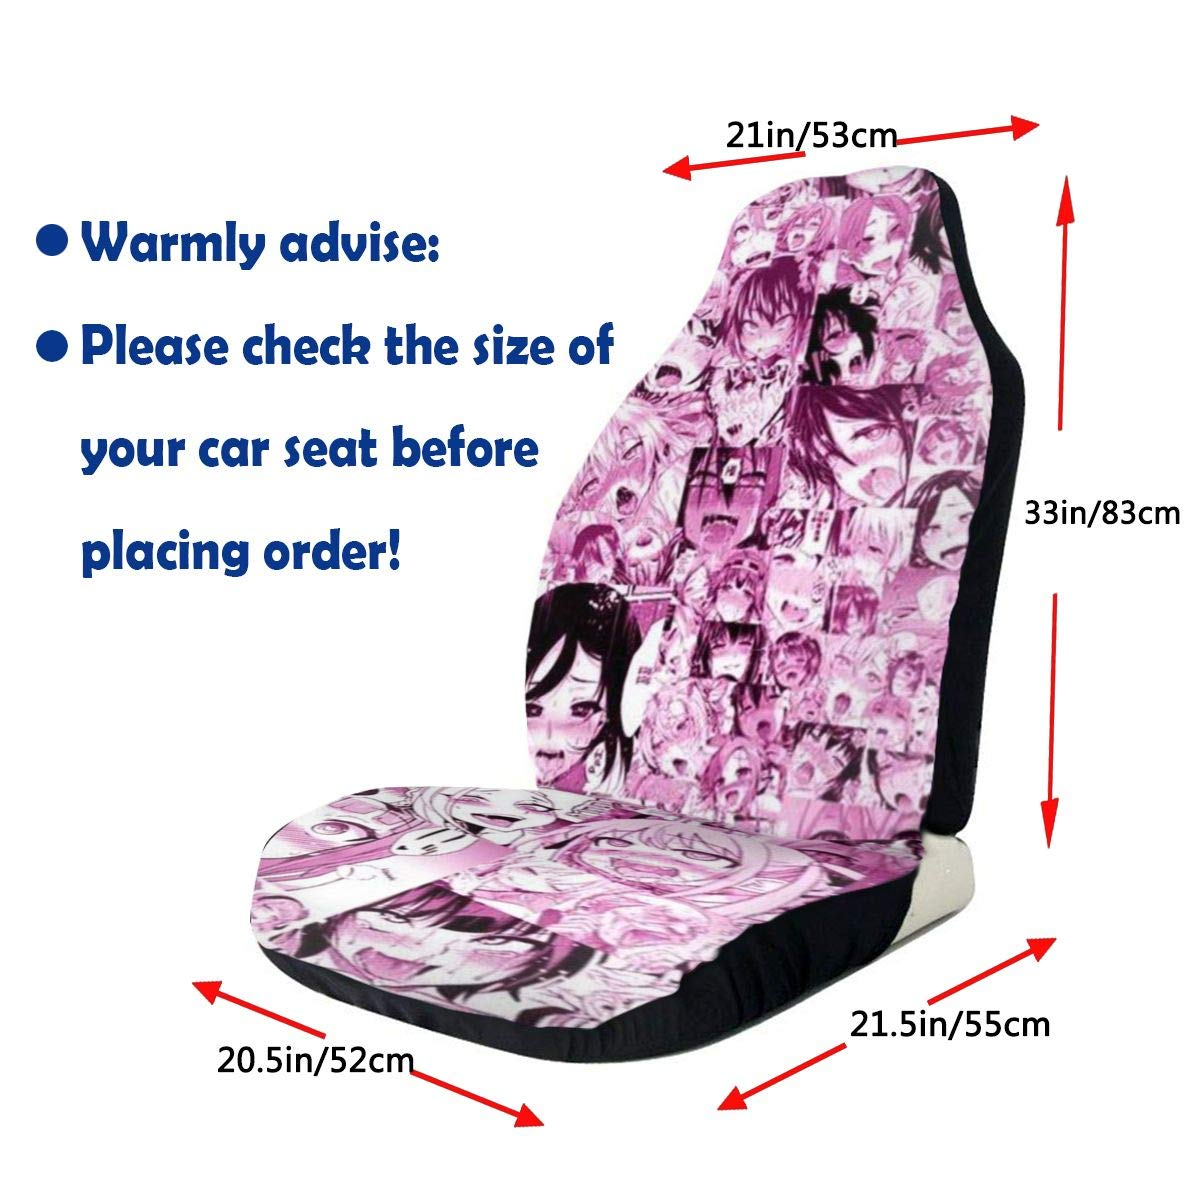 Truck Japan Pink Hentai Collage Printed Car Seat Covers Front Seats Fit Most Car SUV Or Van